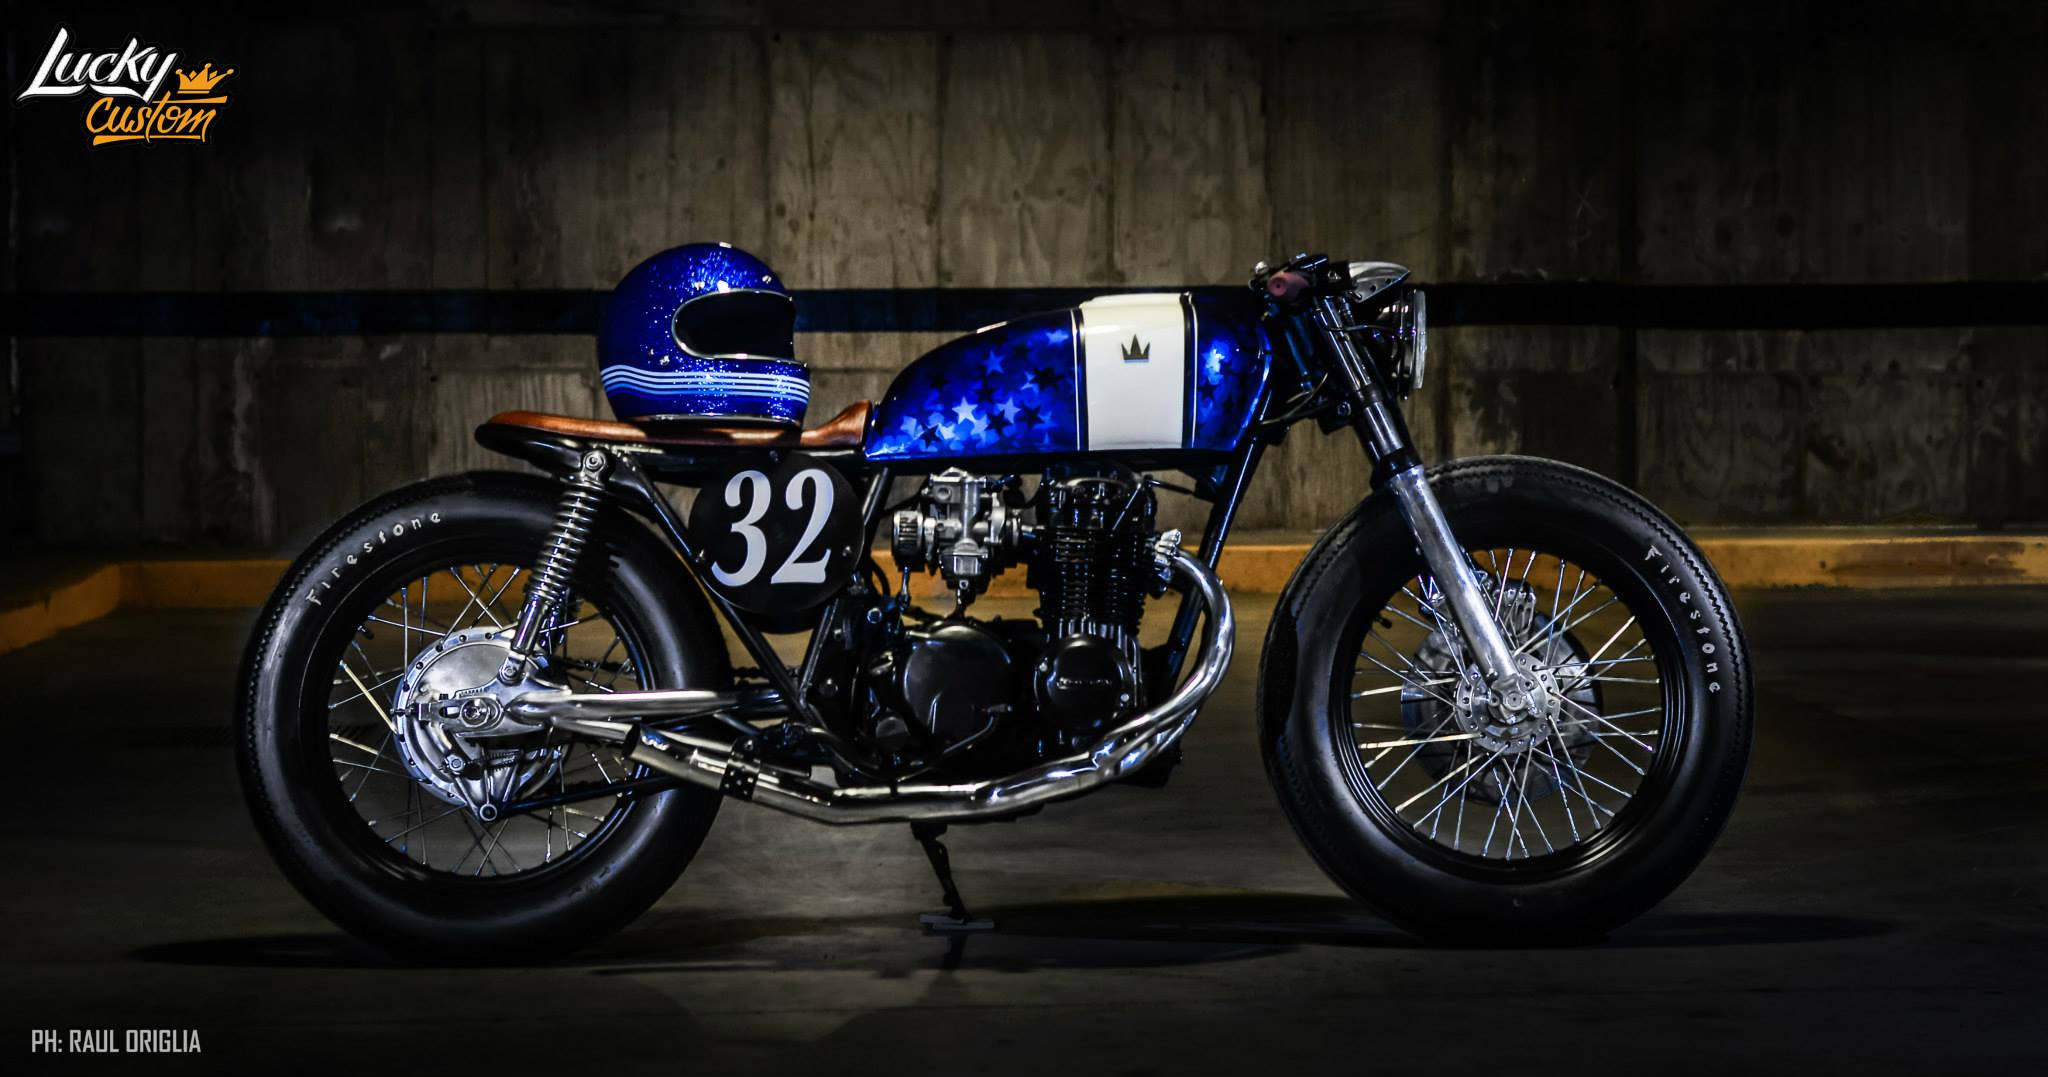 Cb550 Cafe Racer By Lucky Custom on cb750 four cafe racer